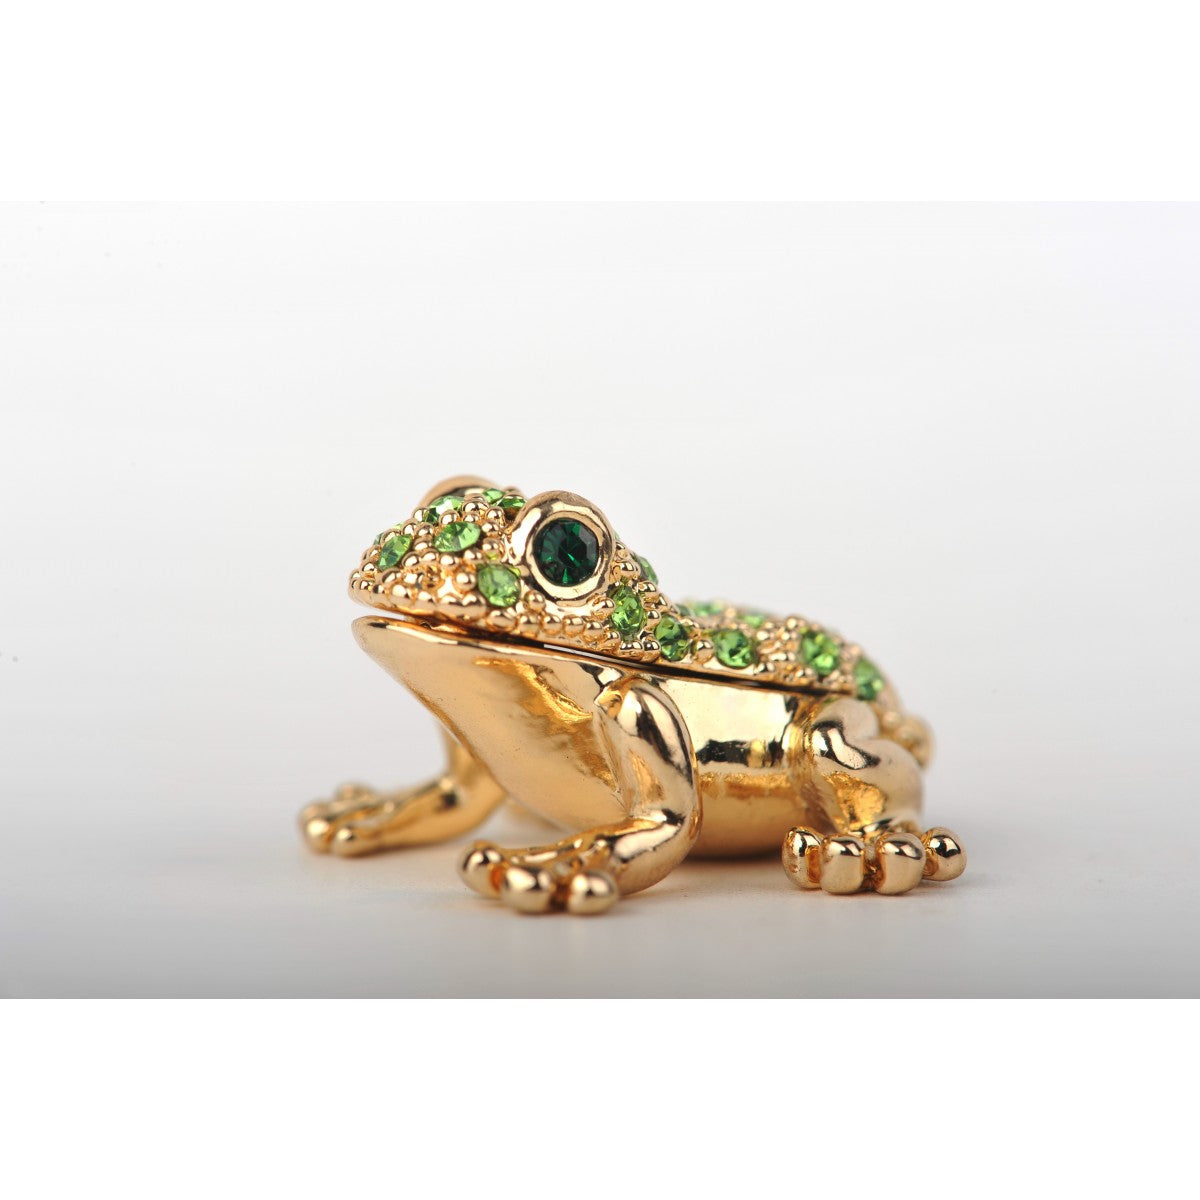 Gold and green frog by Keren Kopal